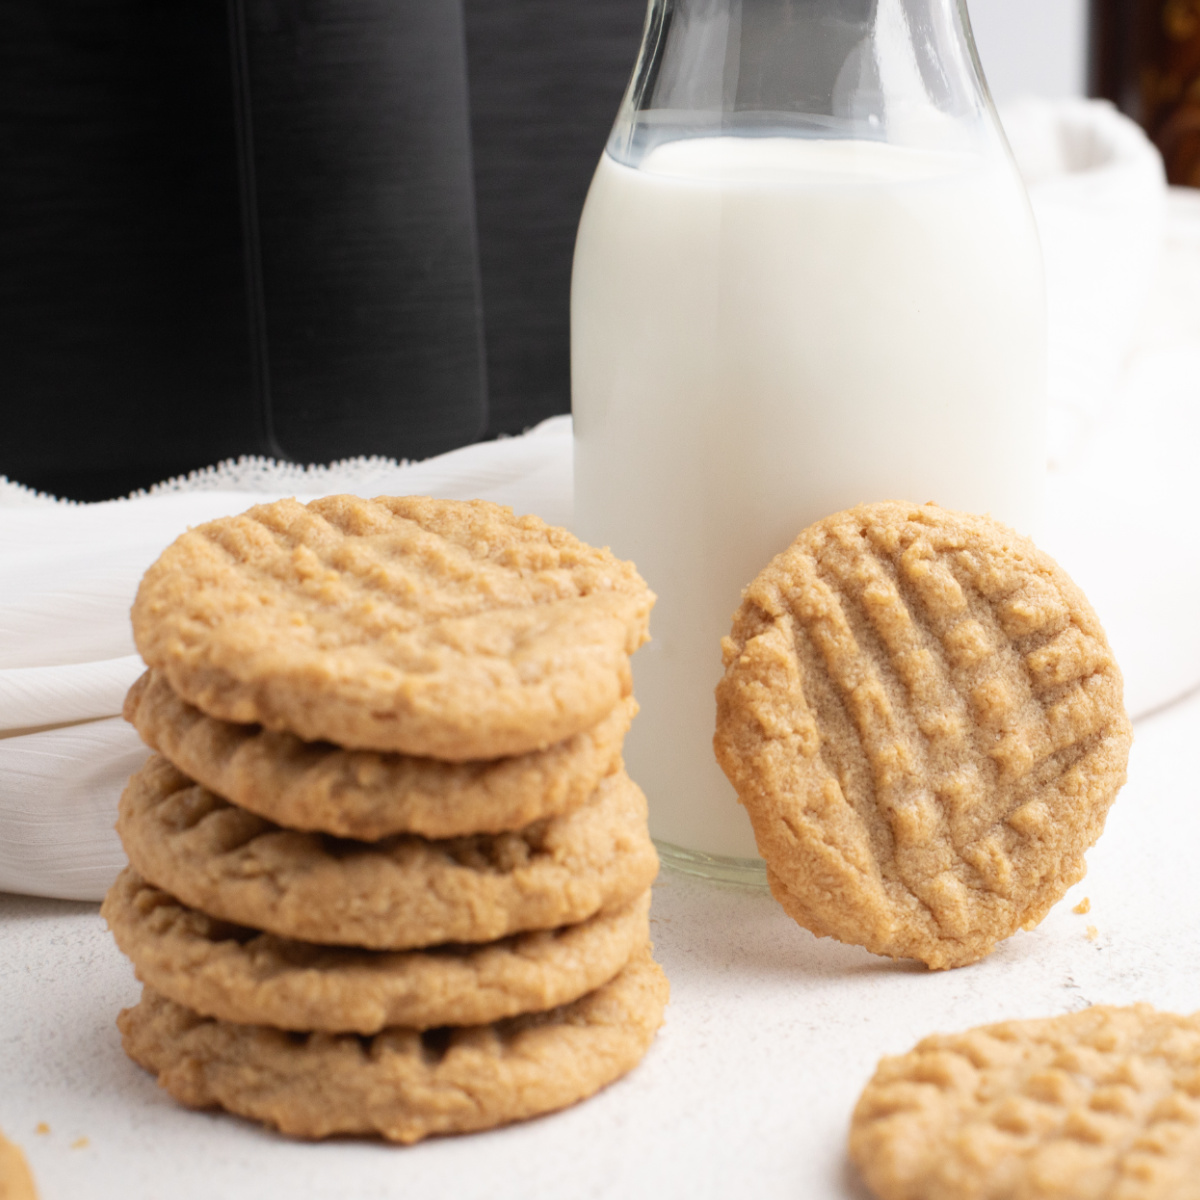 A stack of peanut butter cookies made in the Air Fryer with a glass of milk and the Air Fryer in the background.